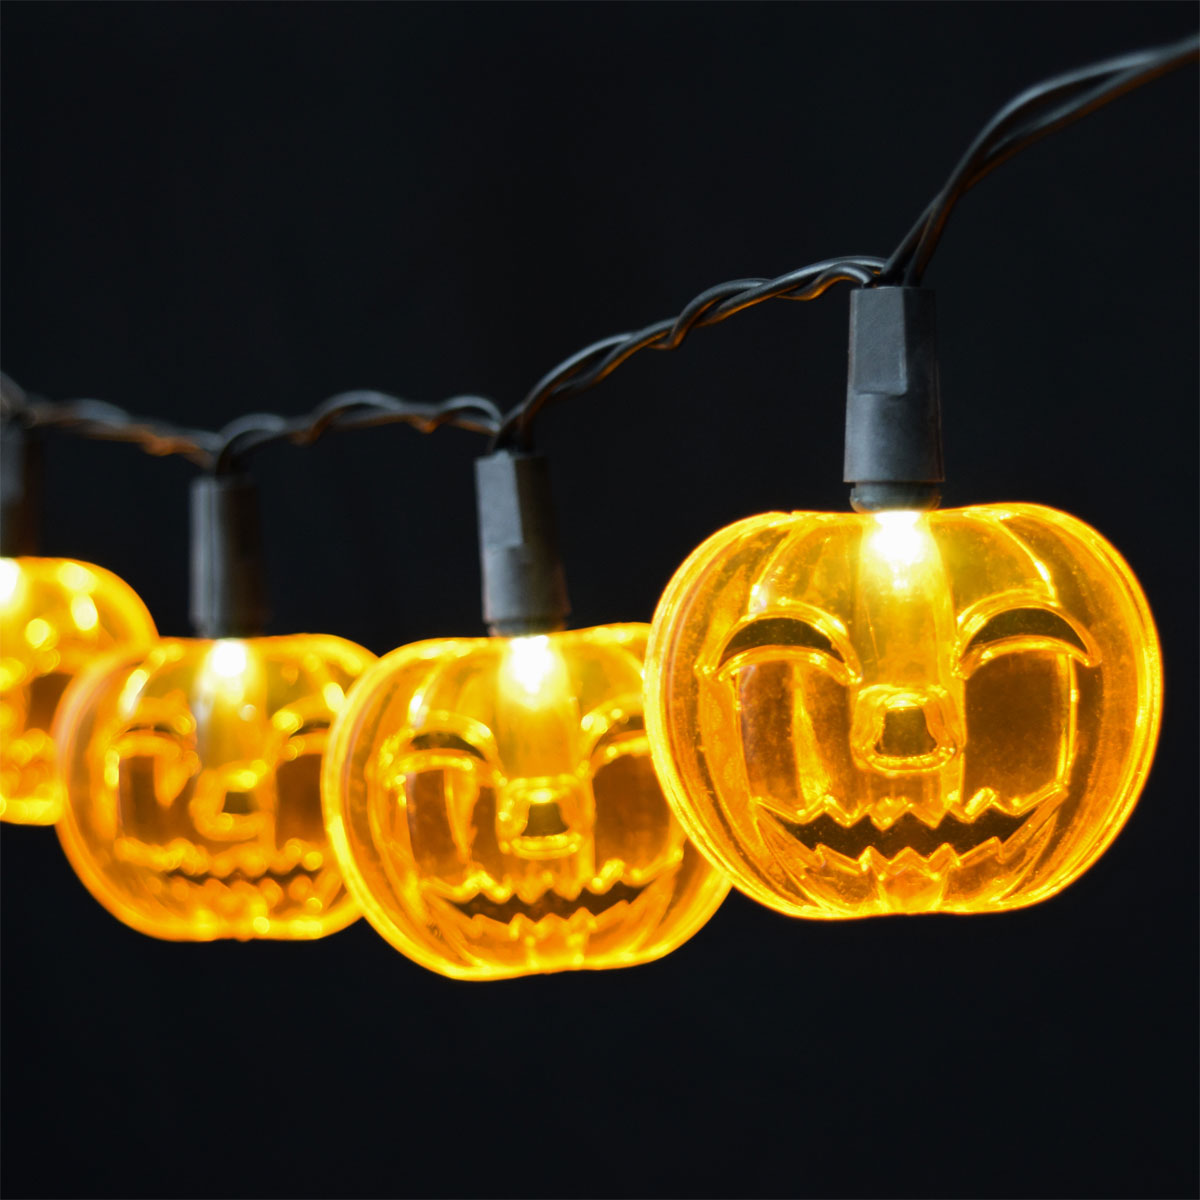 Purple Bat LED String Lights - Battery Operated - Oogalights.com - More Than 1,000 Party ...